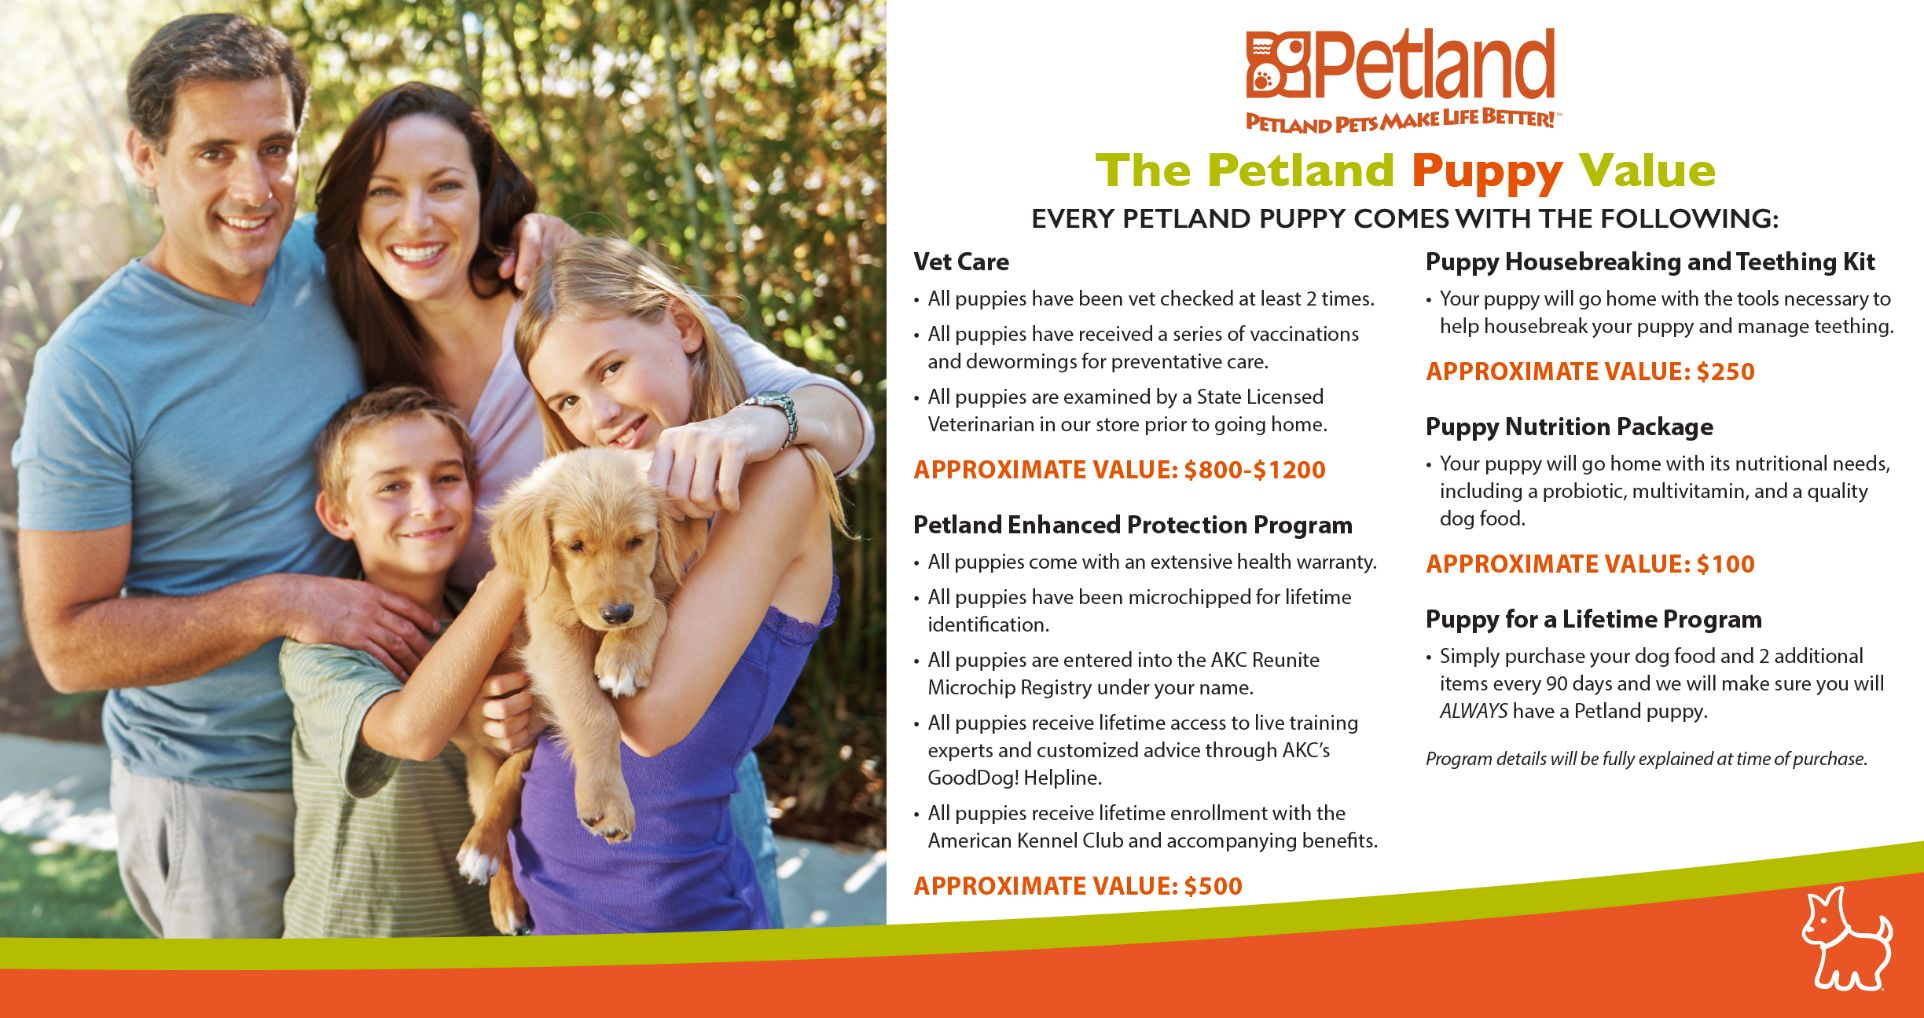 The Petland Puppy Value Package